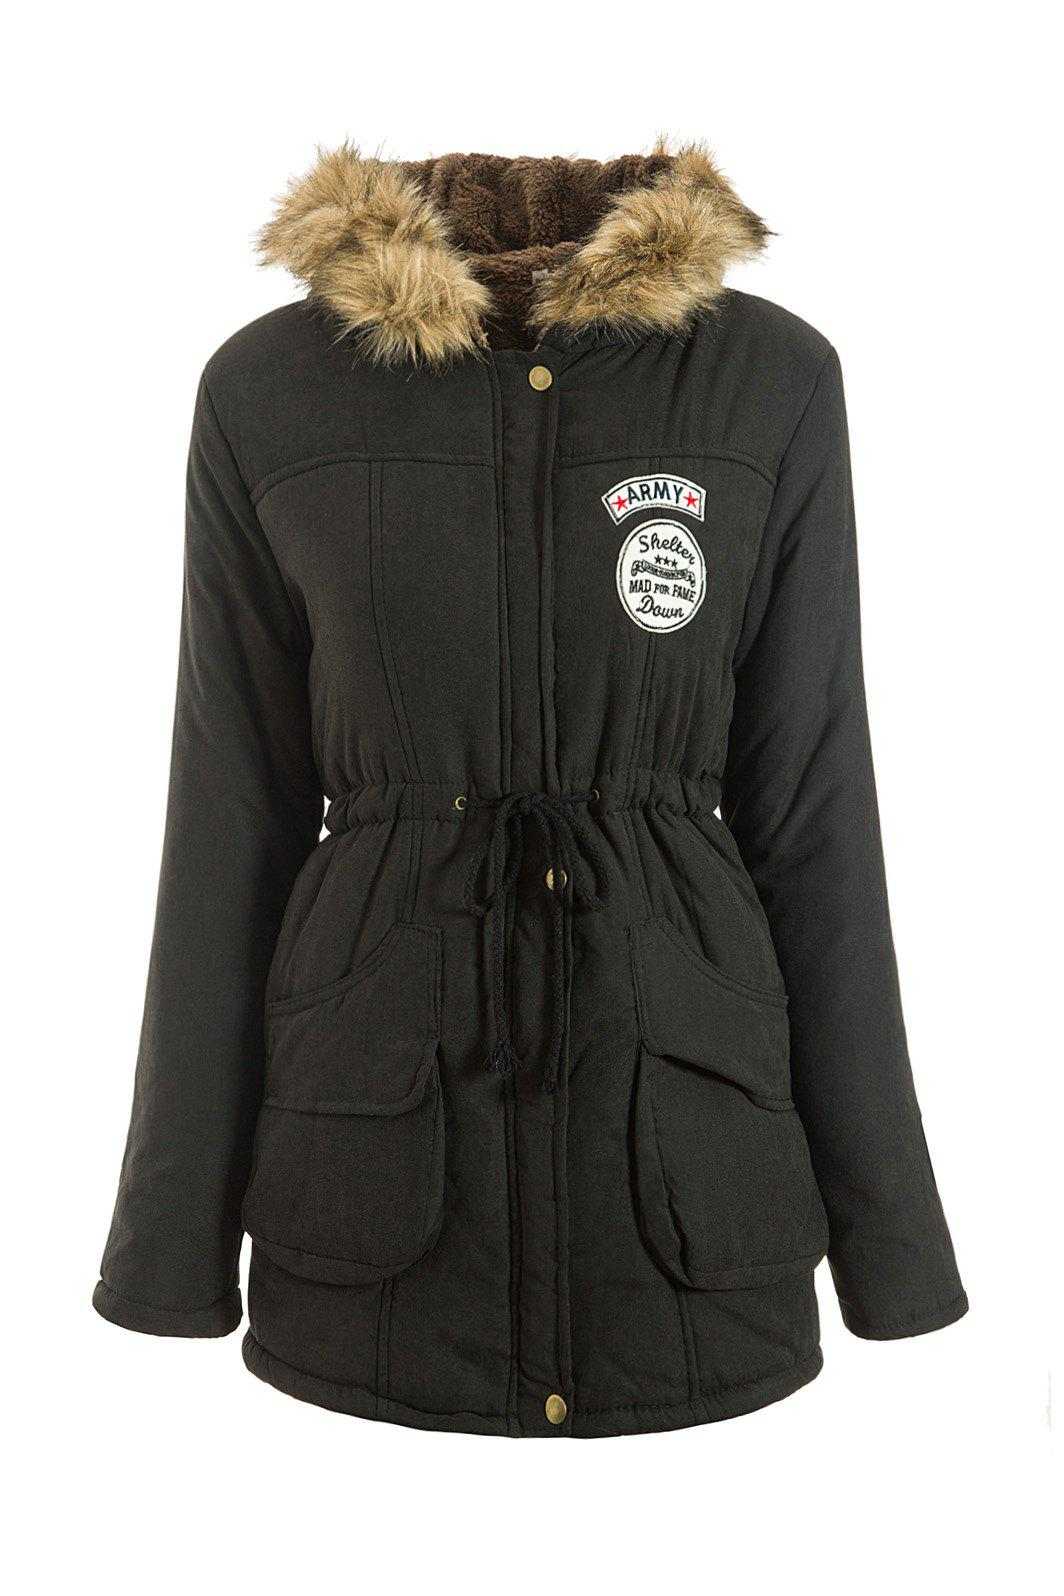 Preppy Style Faux Fur Hooded Drawstring Design Embroidered Fleece Coat For Women - BLACK XL